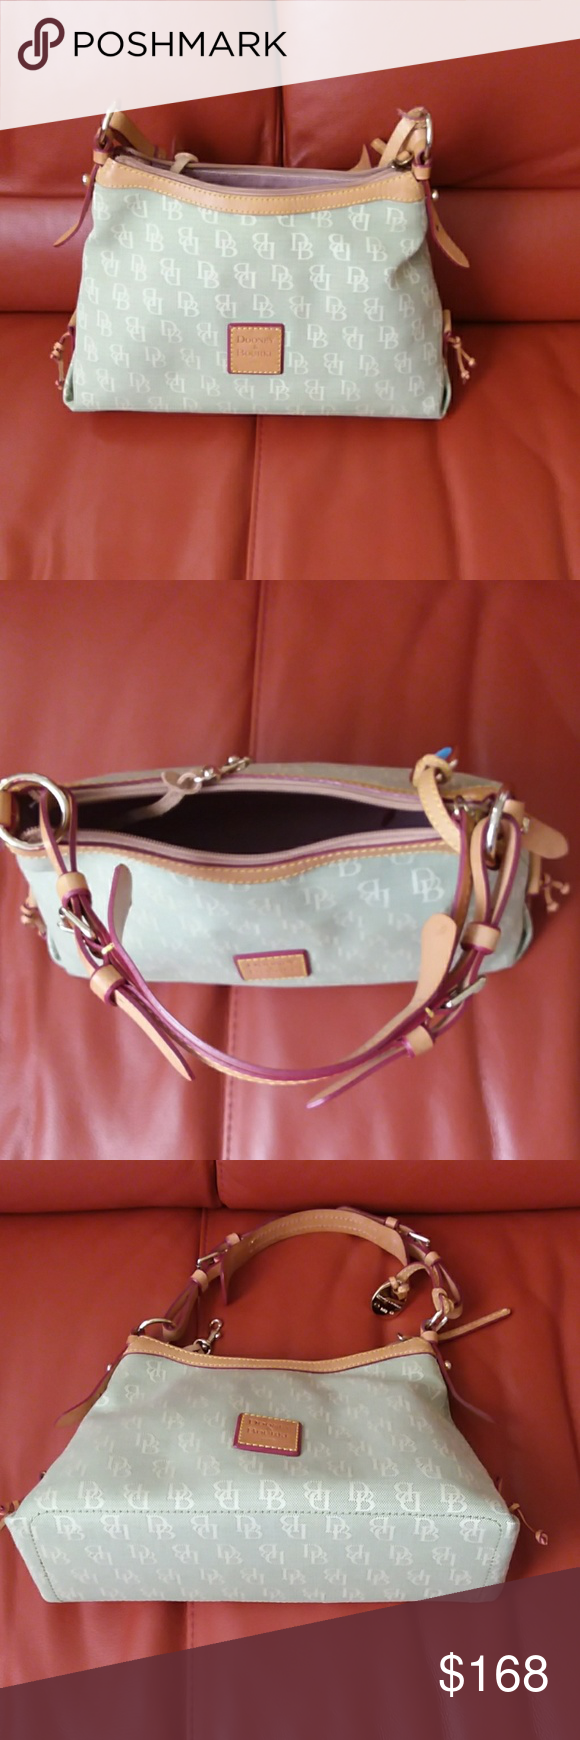 Signature Dooney Bourke Green Cream Authentic Limited Edition Discontinued No More In S Shoulder Bag